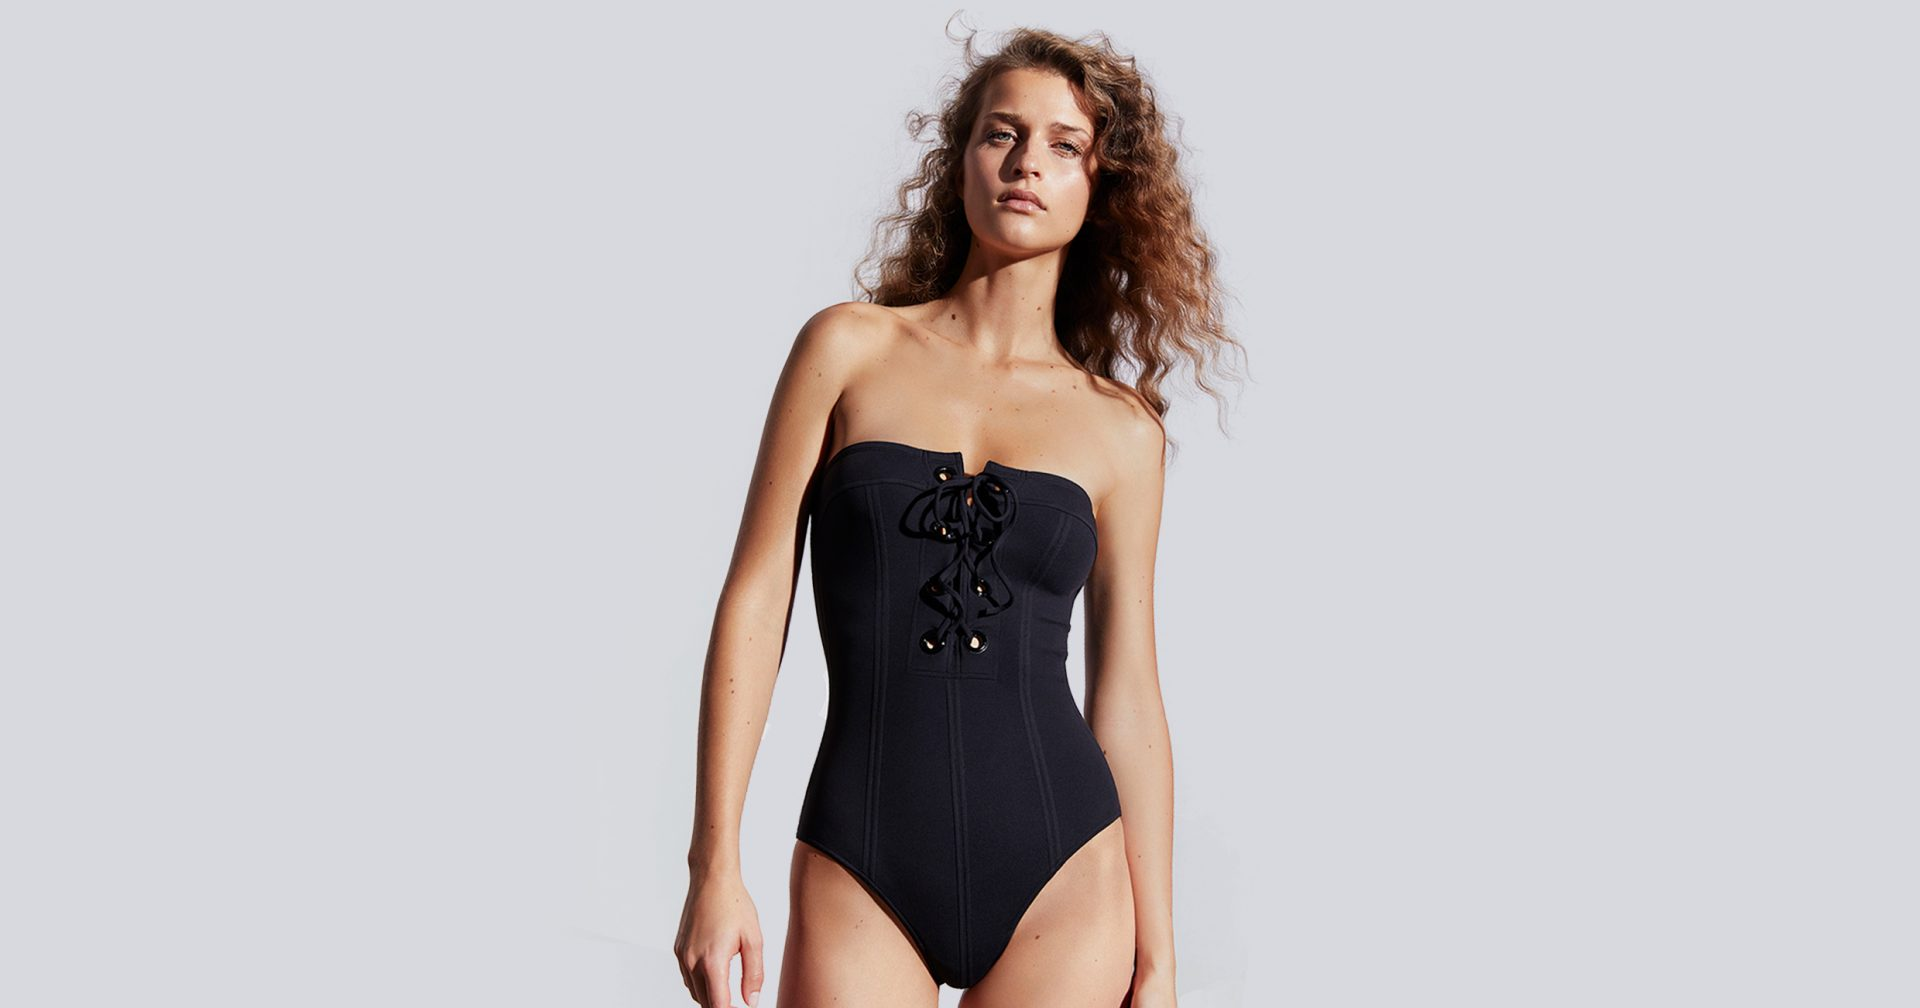 cf6d4feea332a Just in time for pool season, Chanel-owned swimwear label Eres ...